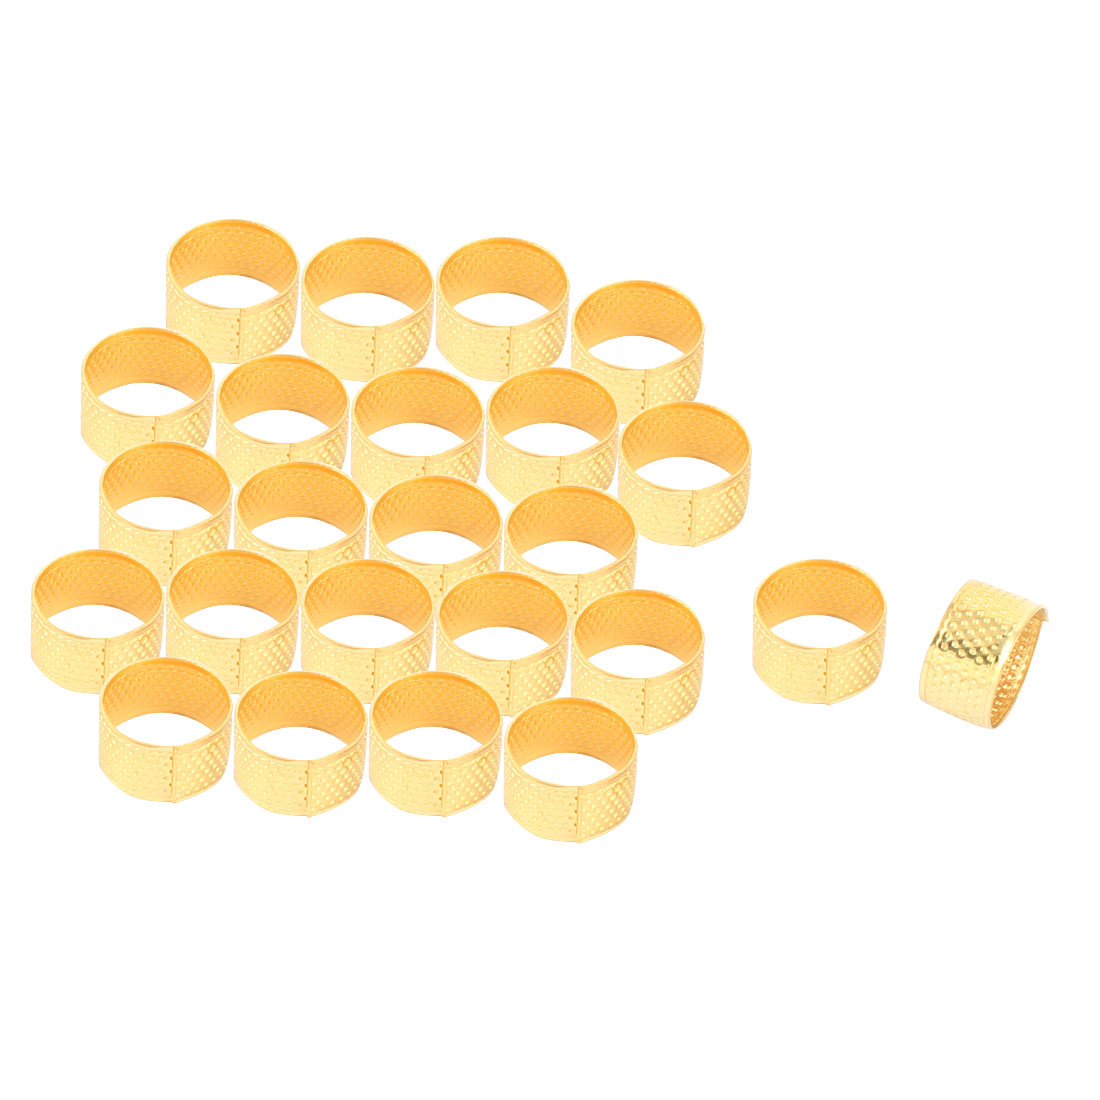 Metal Reeded Sewing Quilting Finger Protective Thimble Ring Gold Tone 24pcs